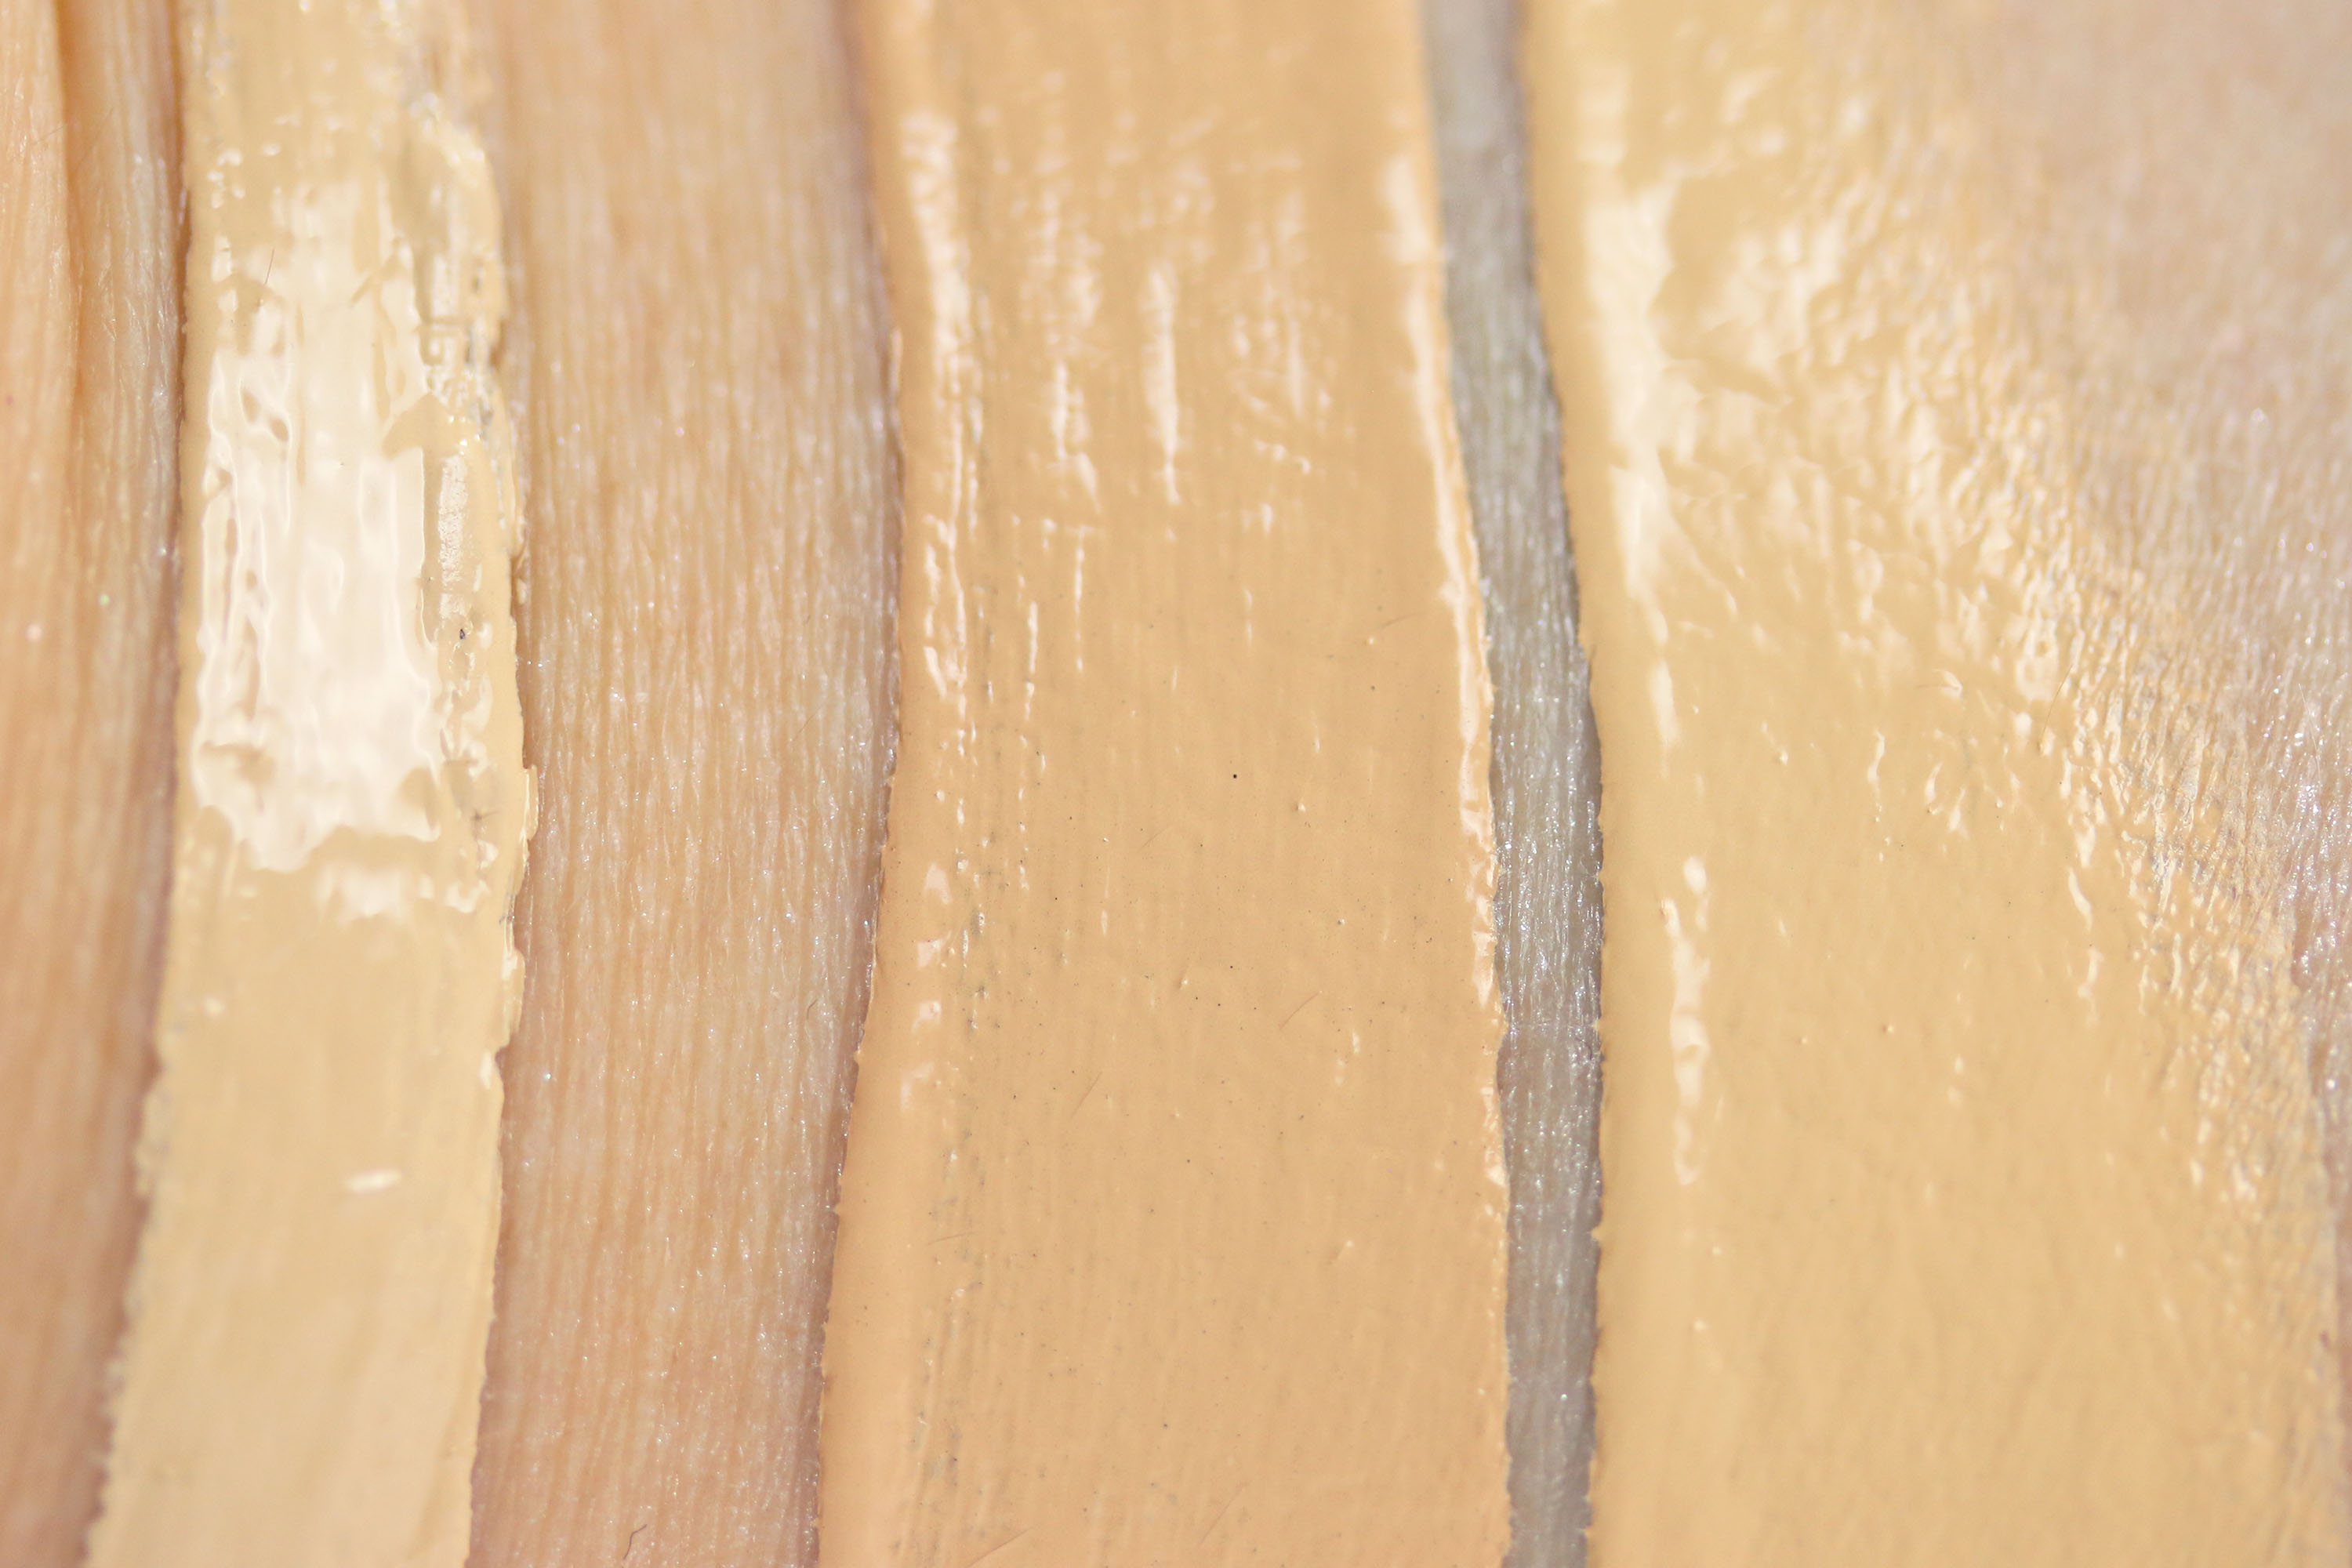 Revlon colorstay foundation swatches asian dating 4